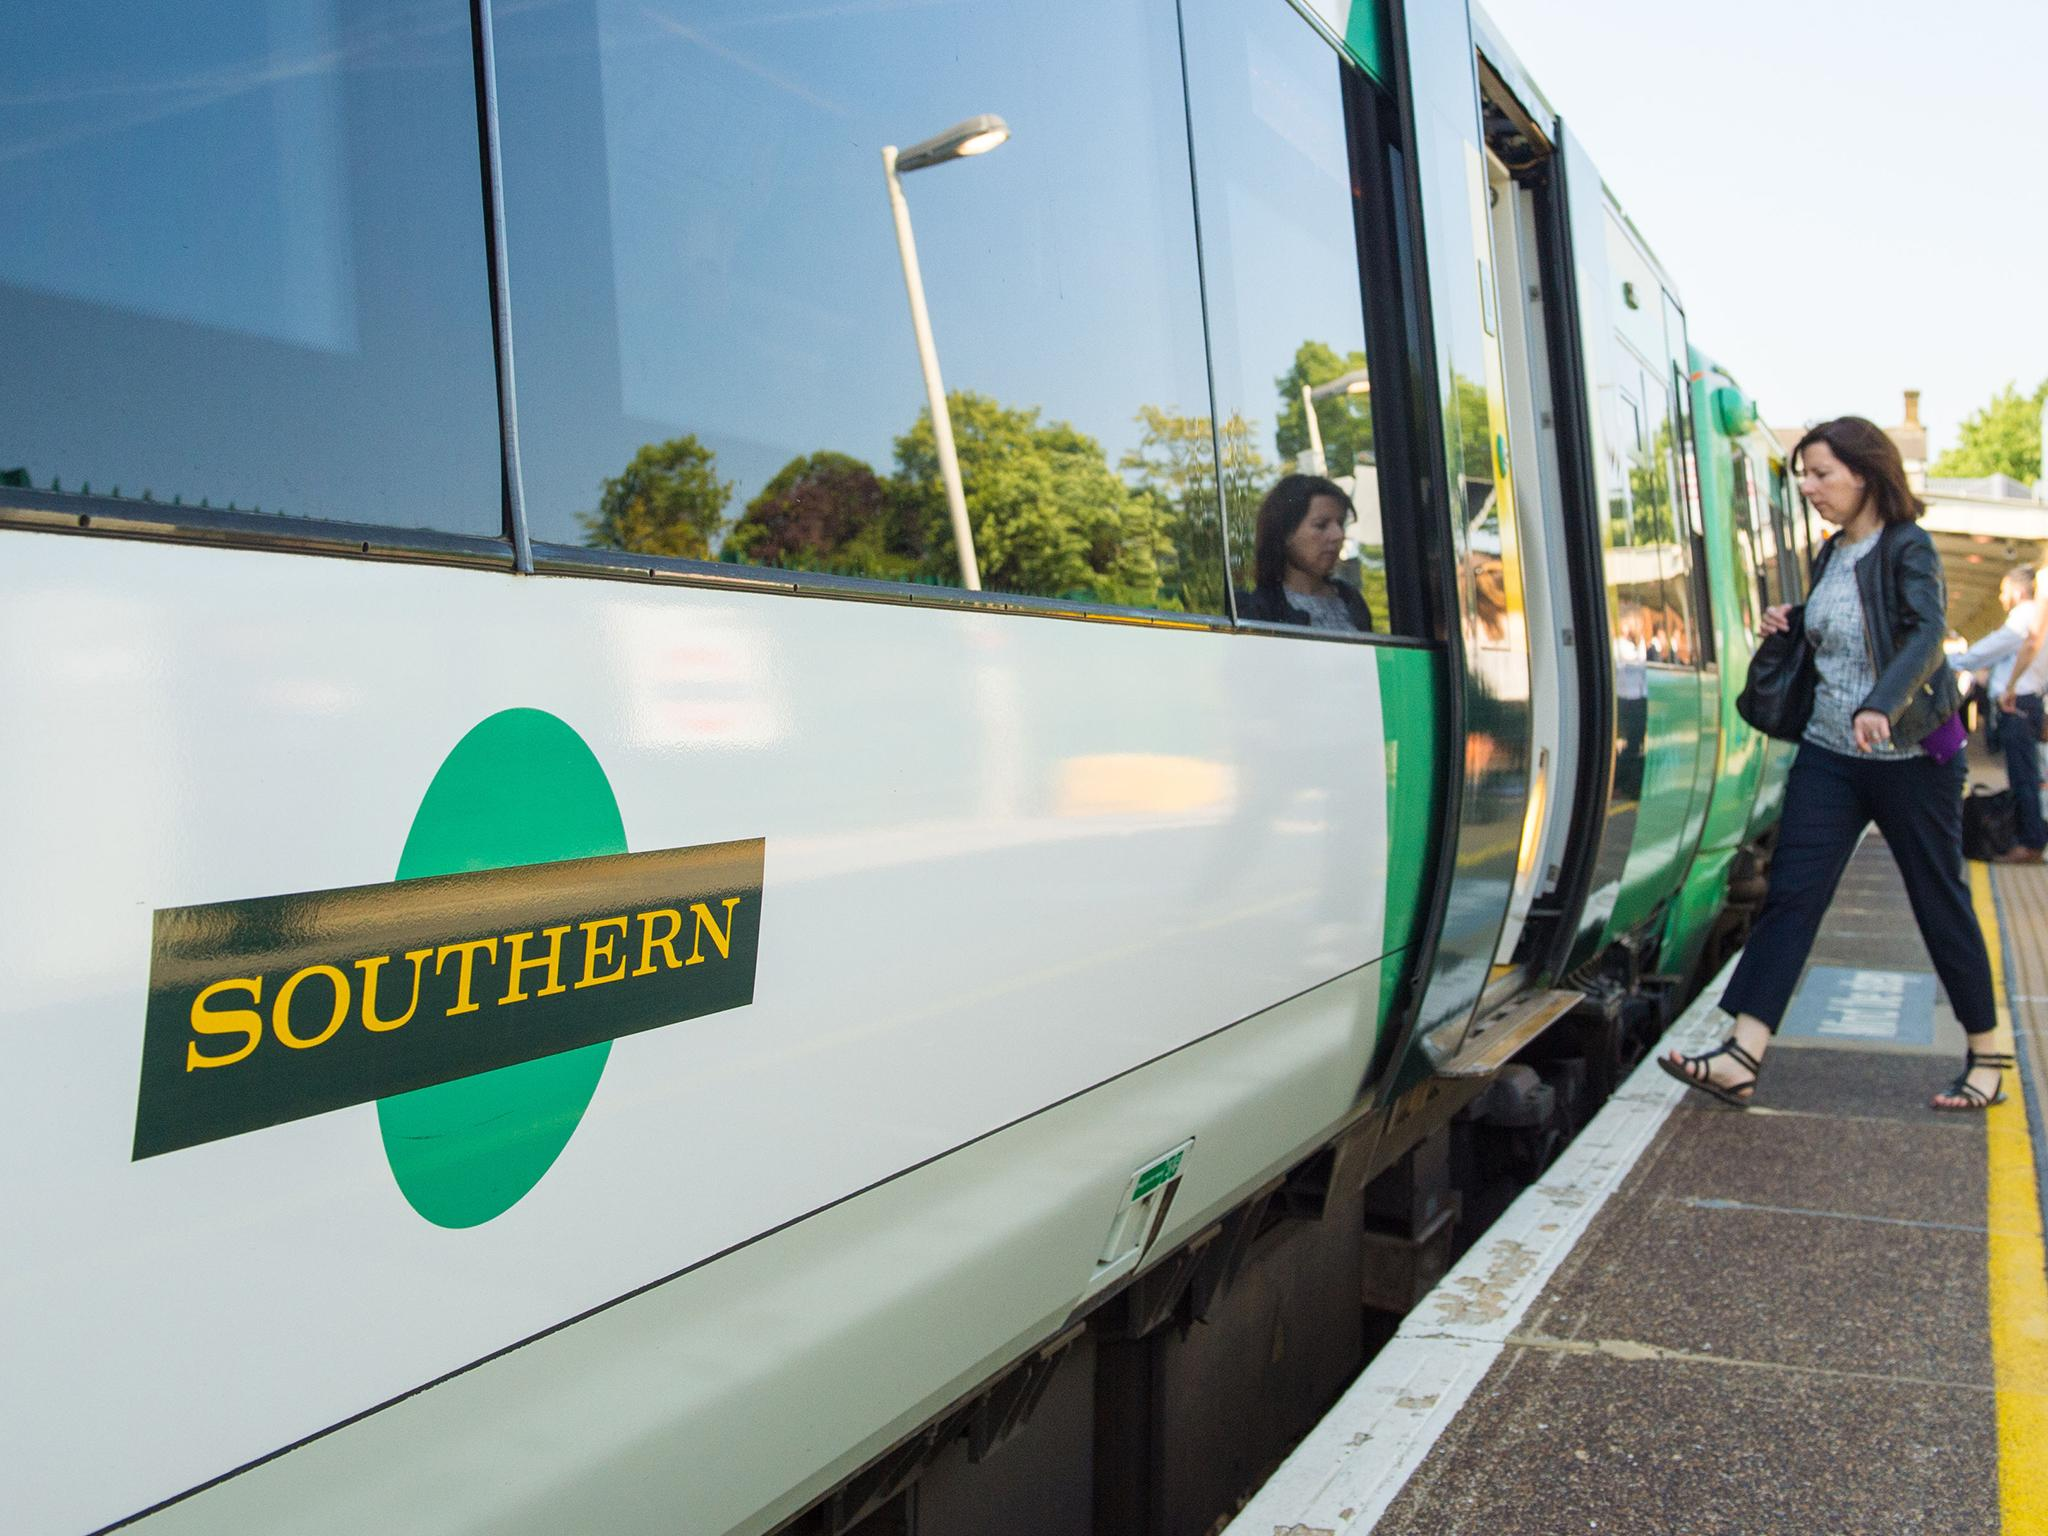 Long-running rail strikes push private sector industrial action to record 10-year high